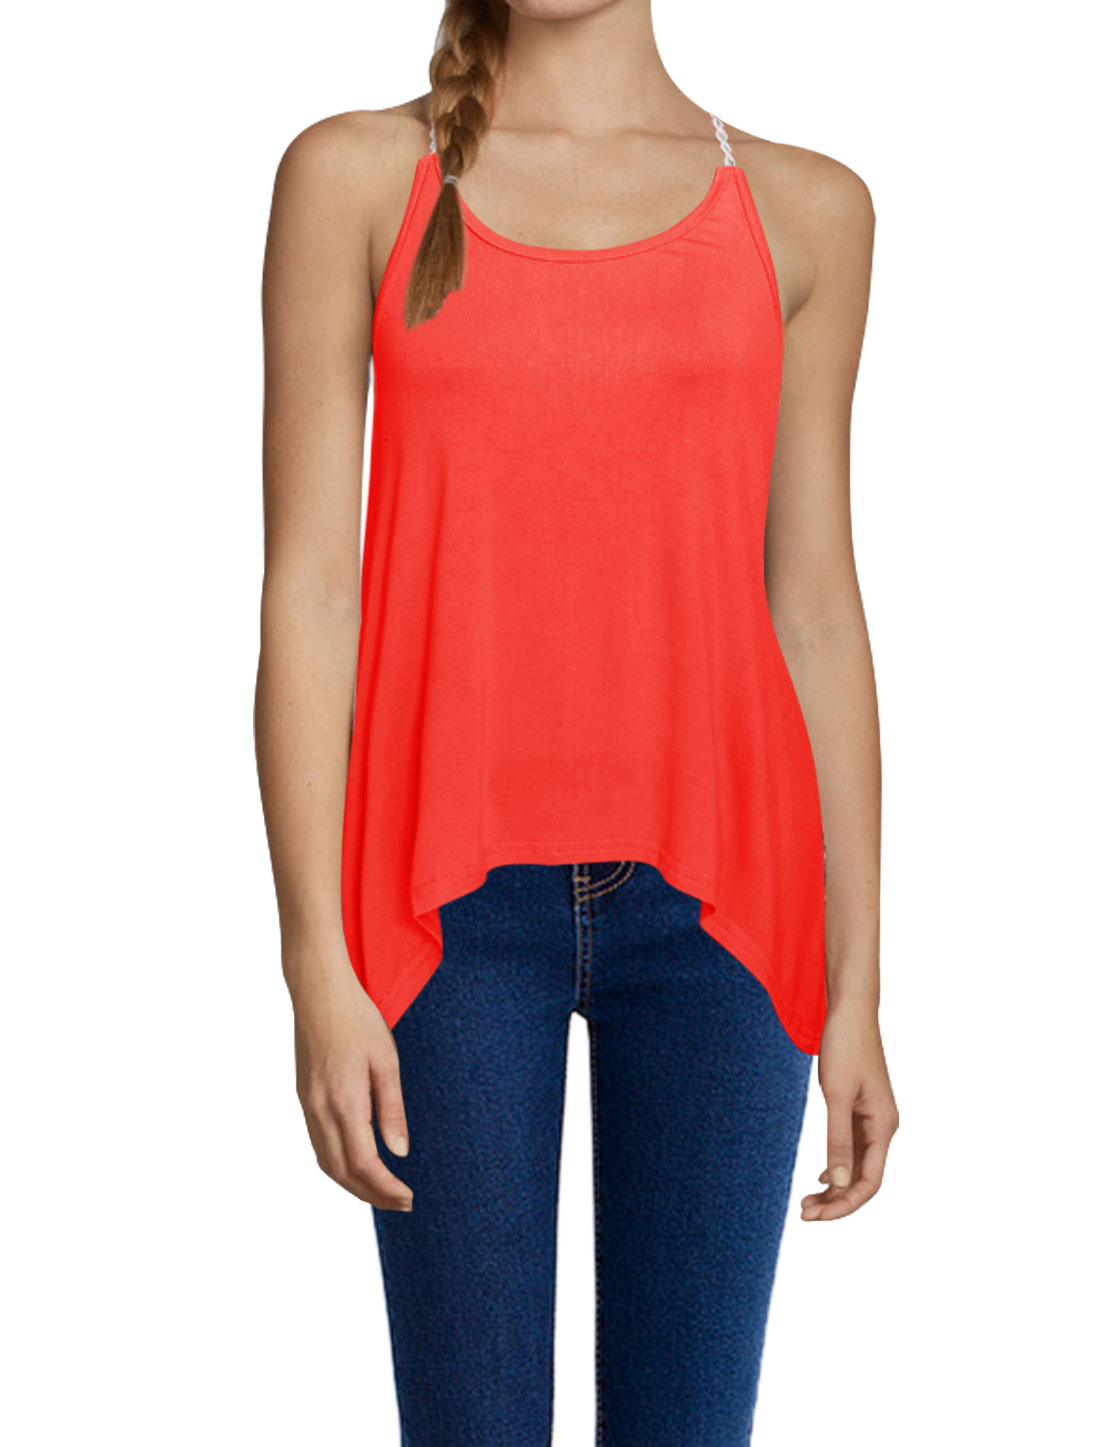 Women Scoop Neck Spaghetti Strap Sleeveless Casual Top Watermelon Red M